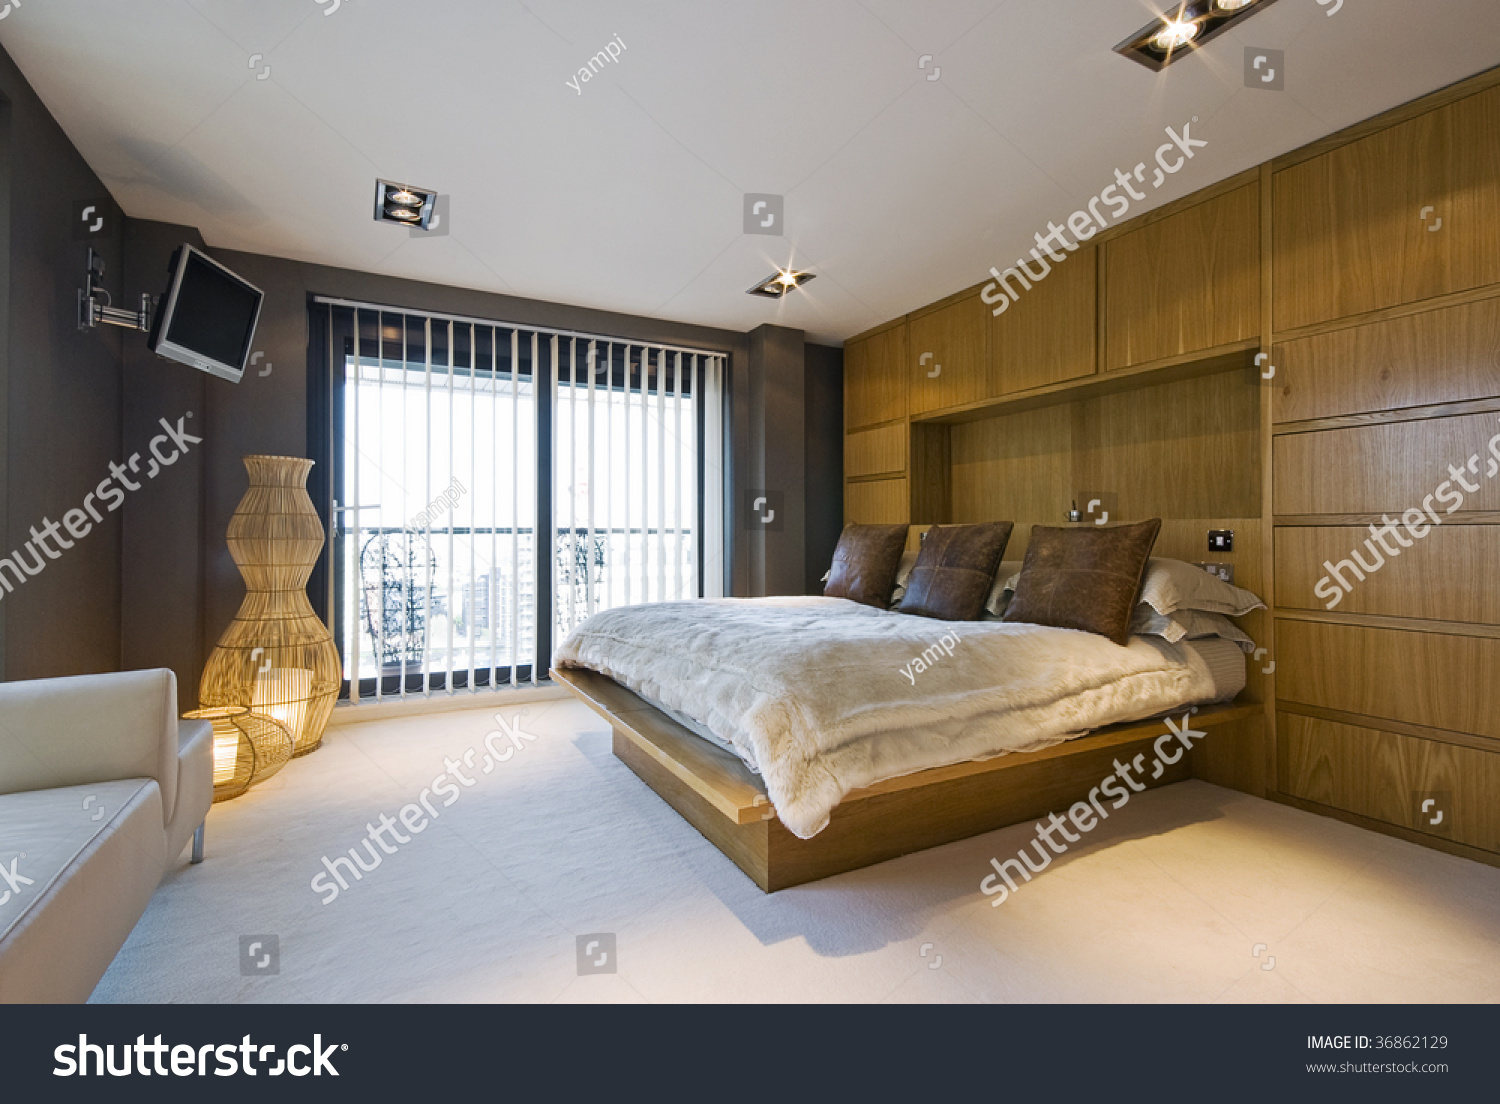 Stunning Luxury Bedroom With A King Size Bed Wall Mount